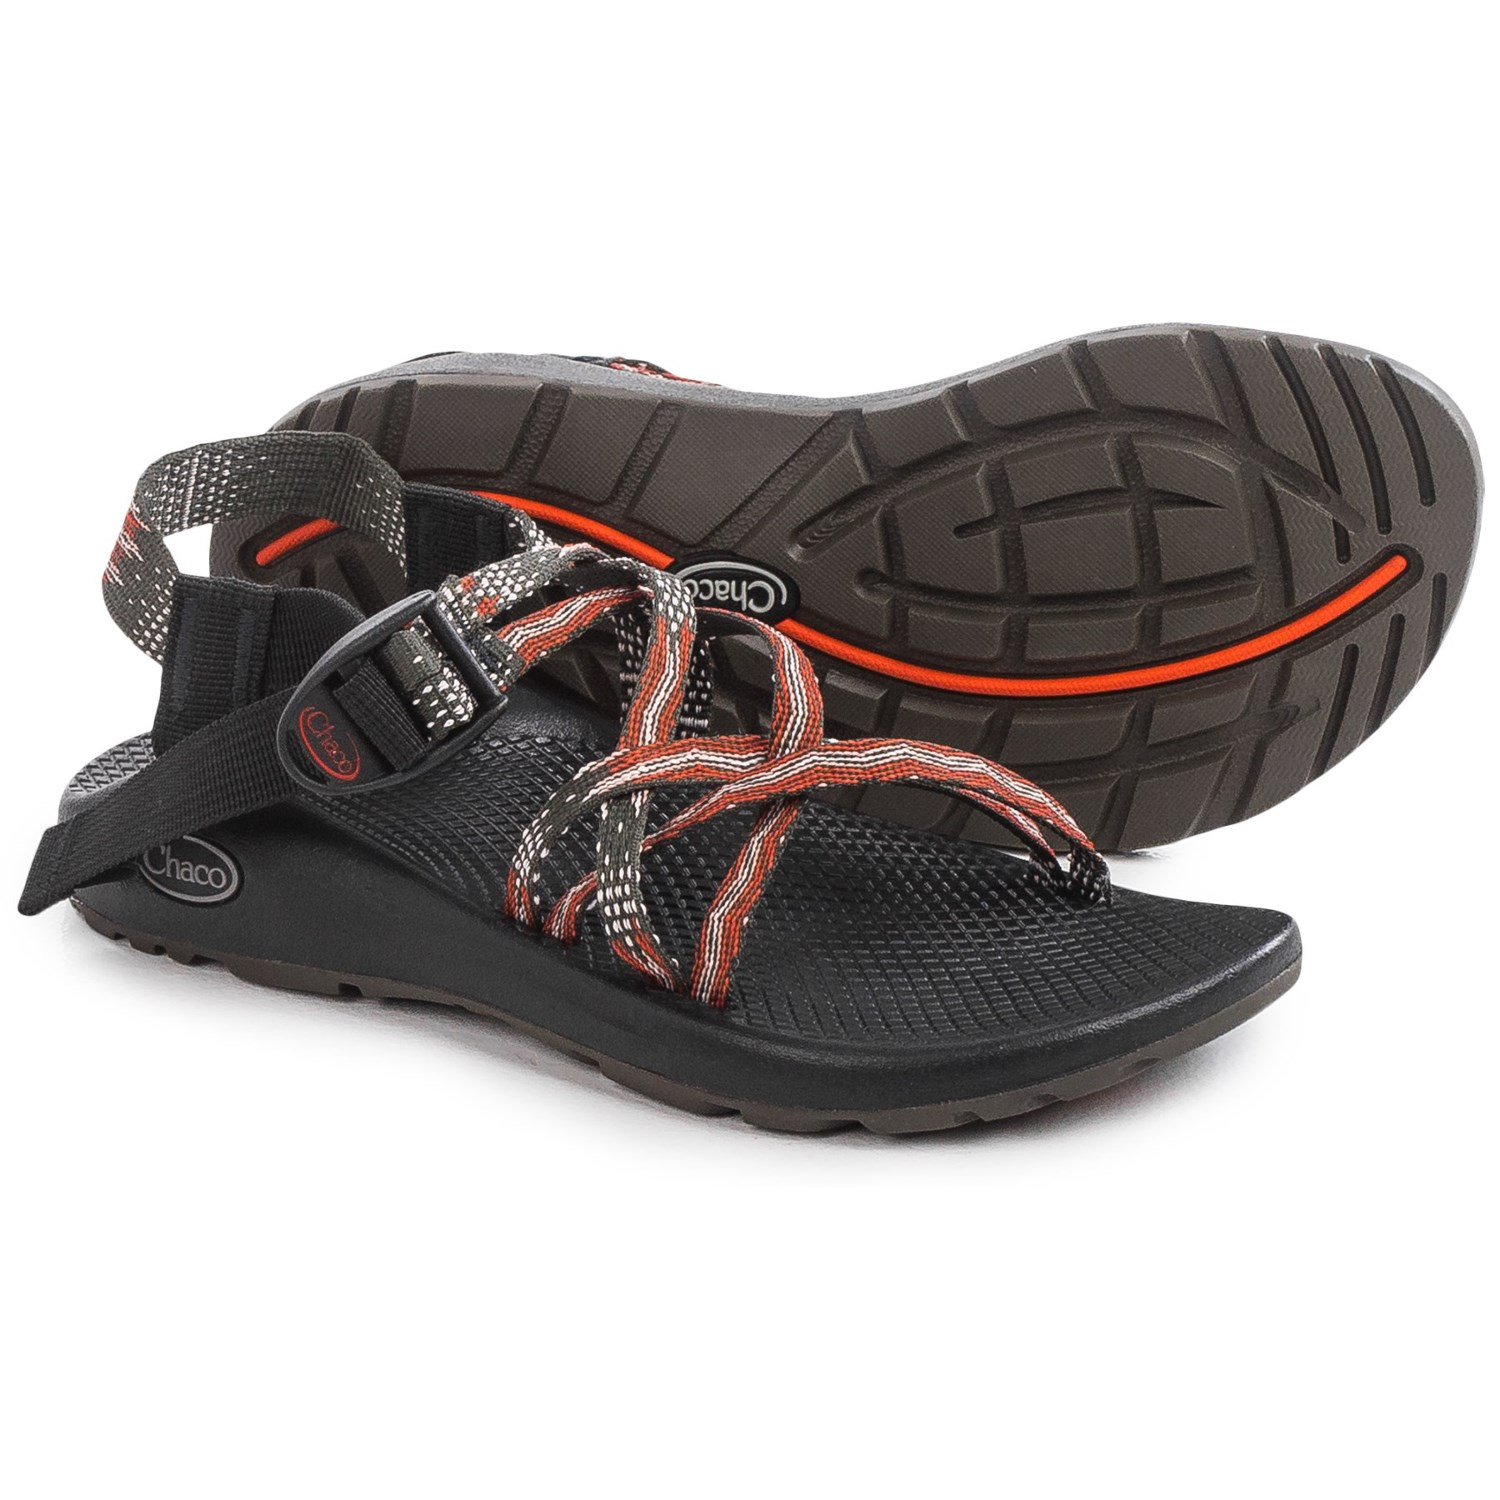 Chaco Zx 1 174 Classic Sport Sandals For Women Save 42